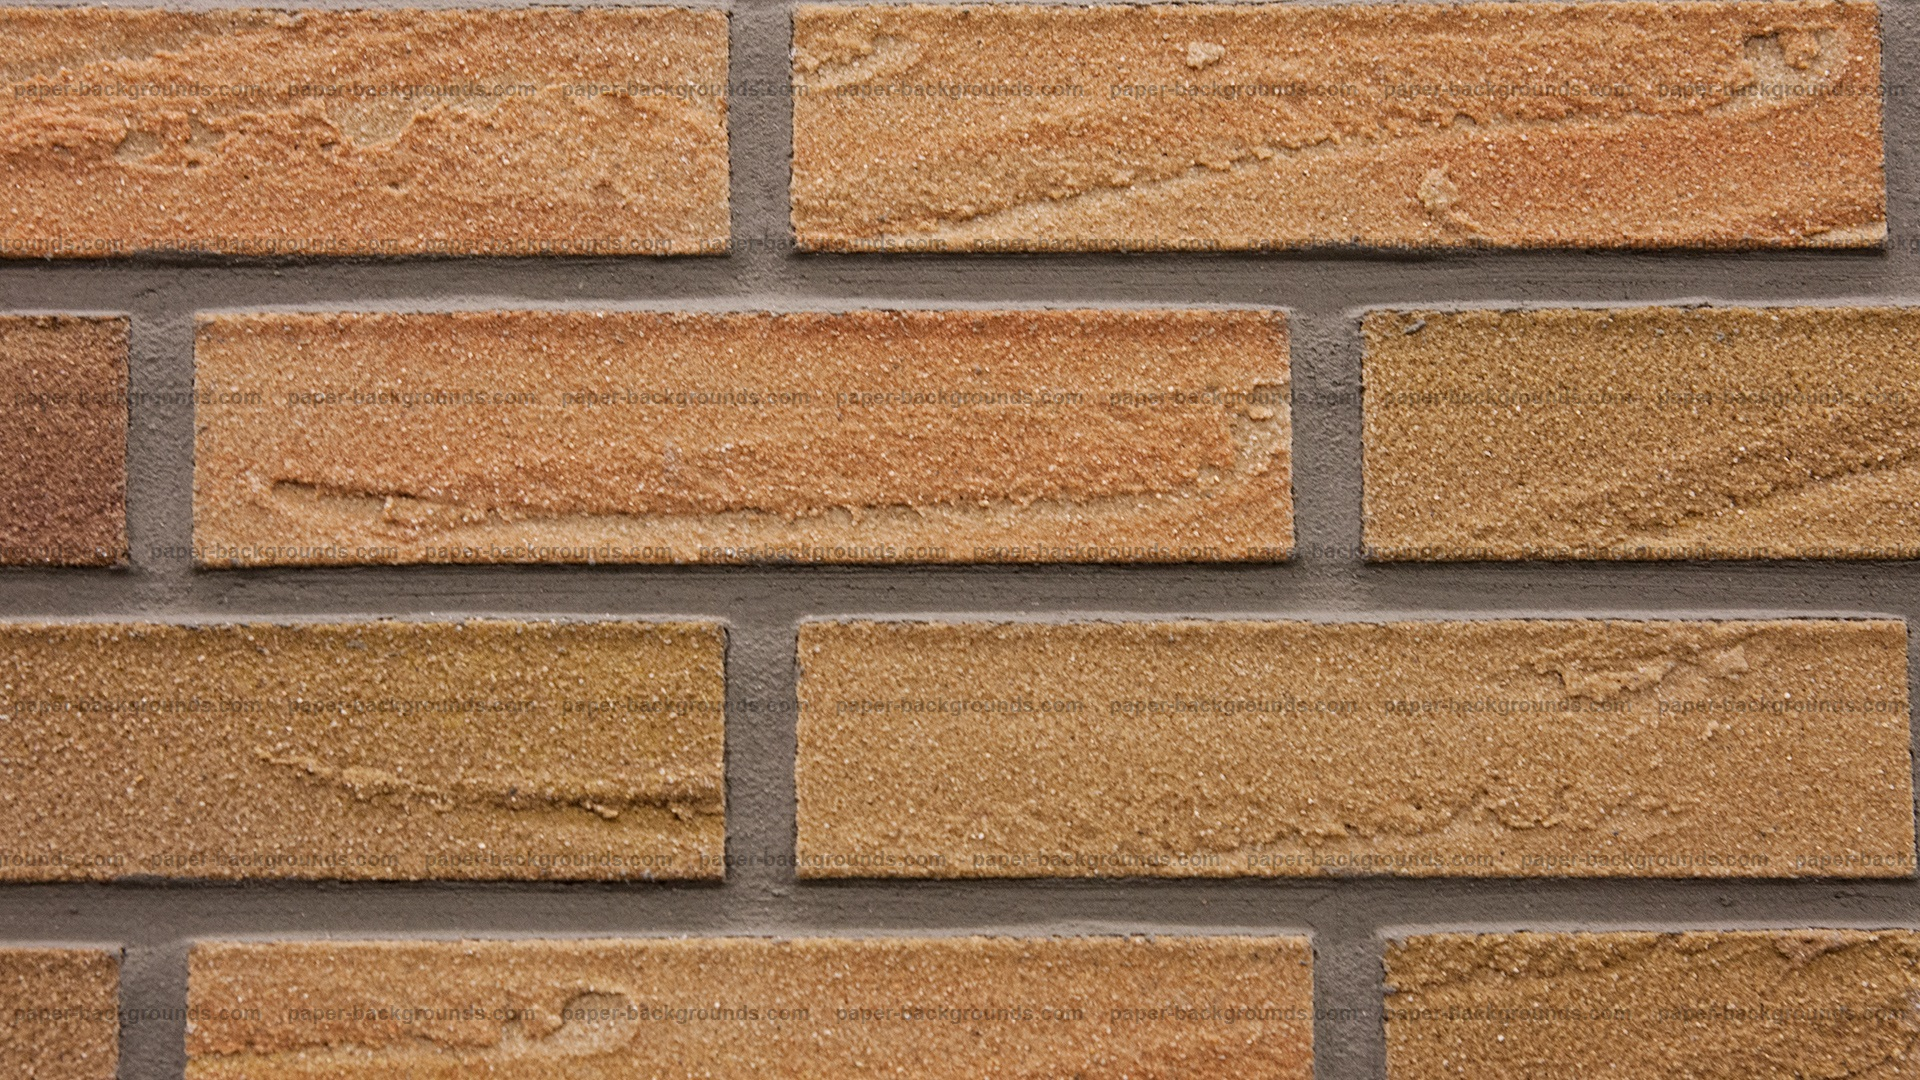 Free 3d Pile Of Bricks Wallpaper Paper Backgrounds Concrete Textures Royalty Free Hd